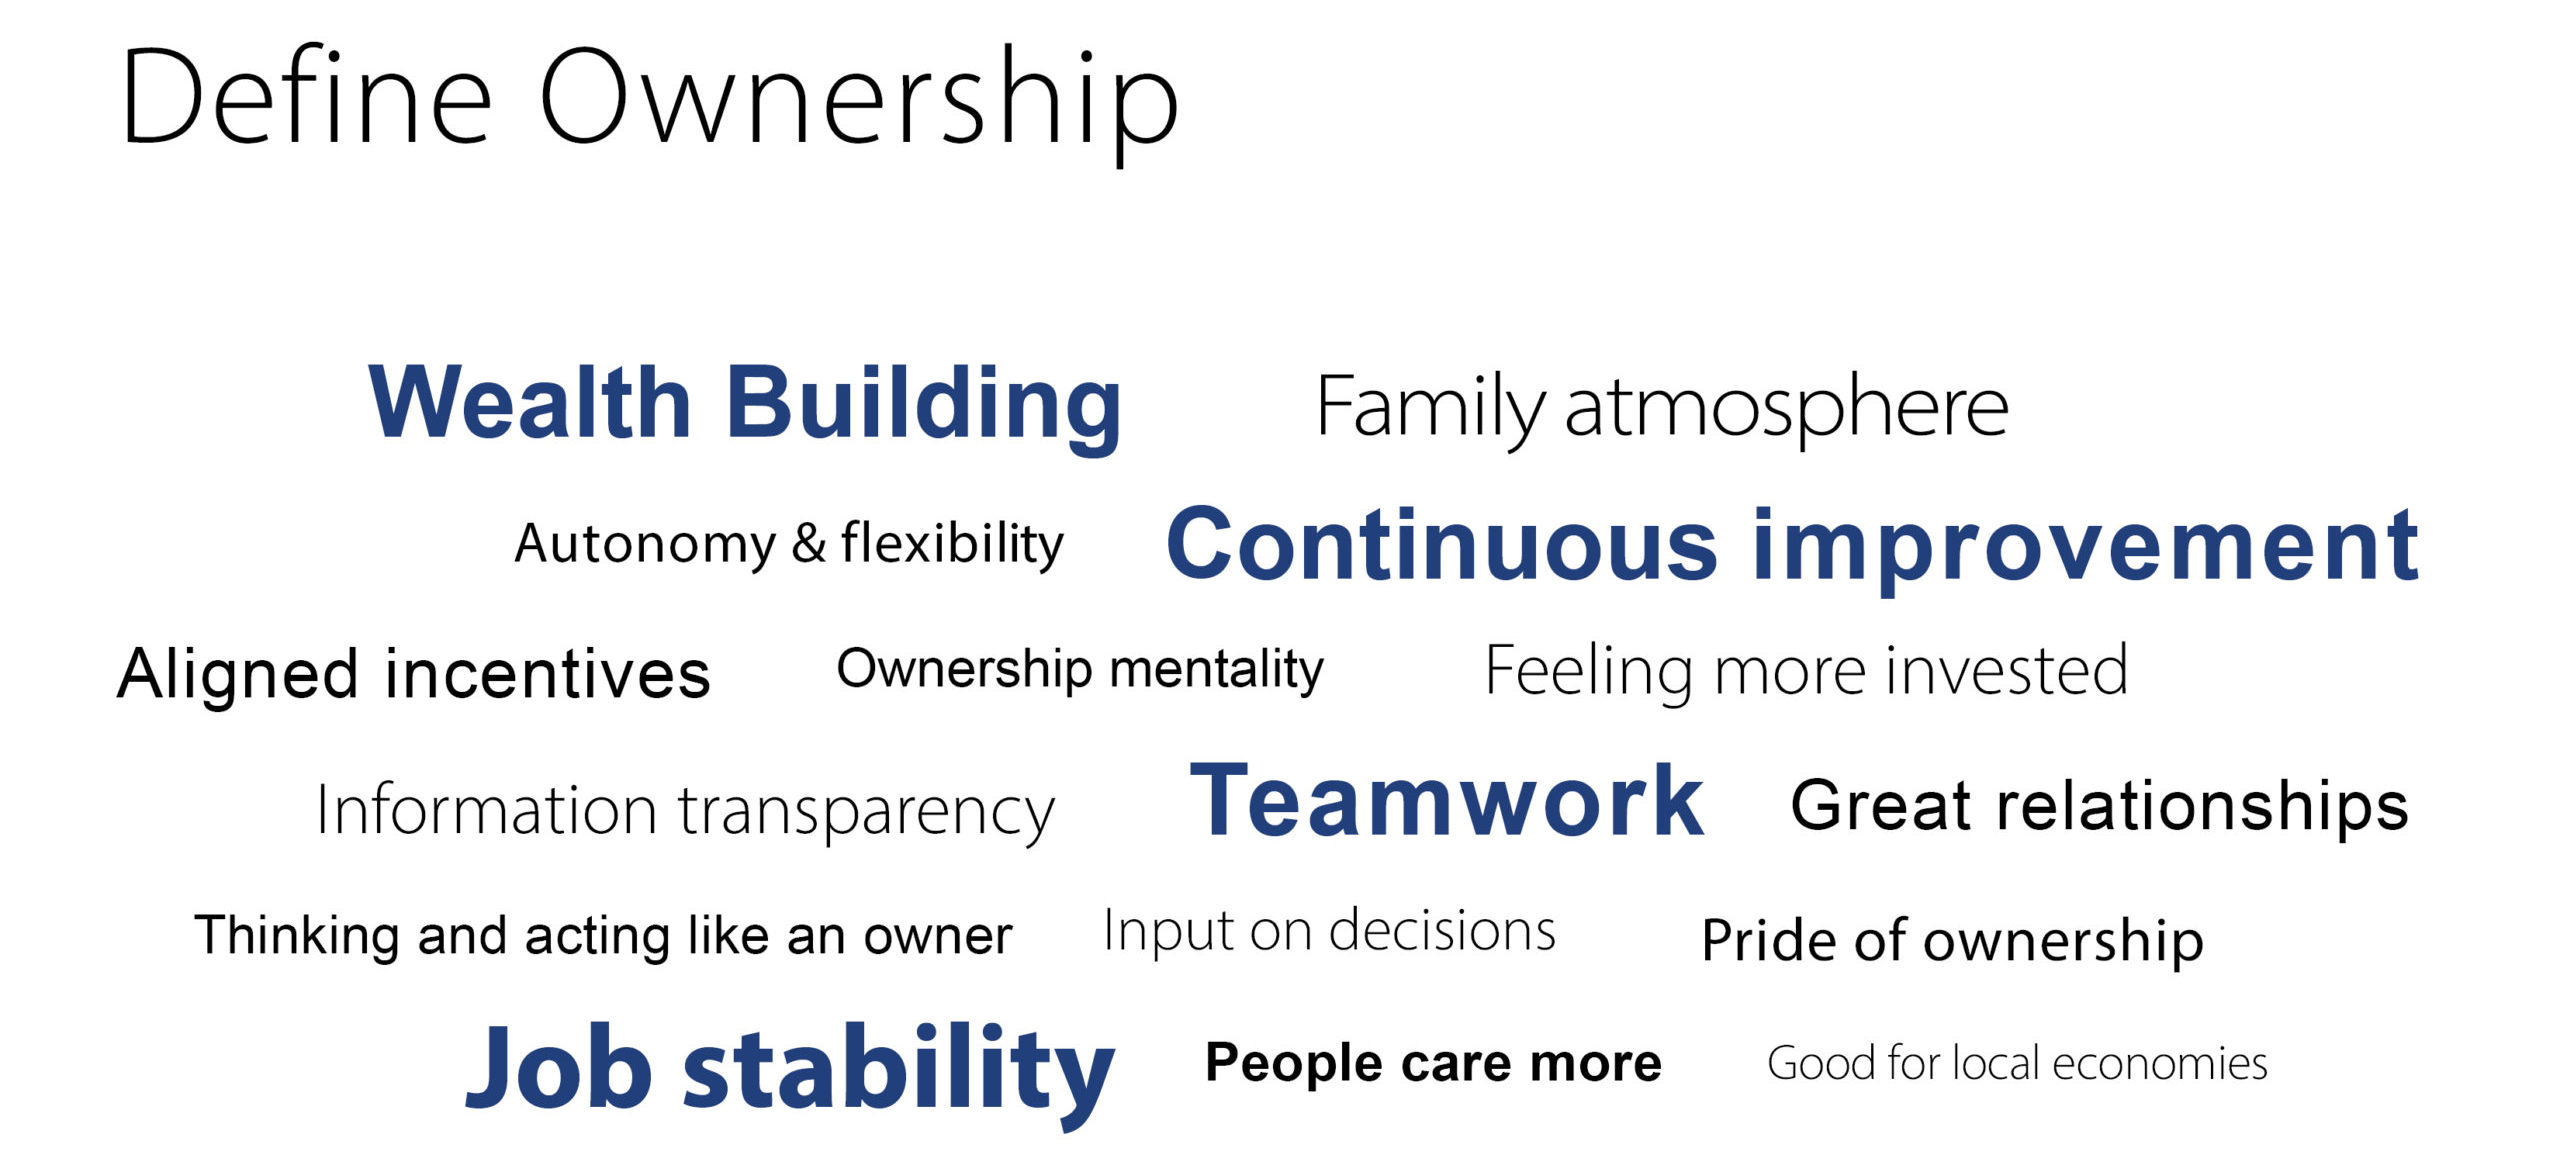 Define Ownership